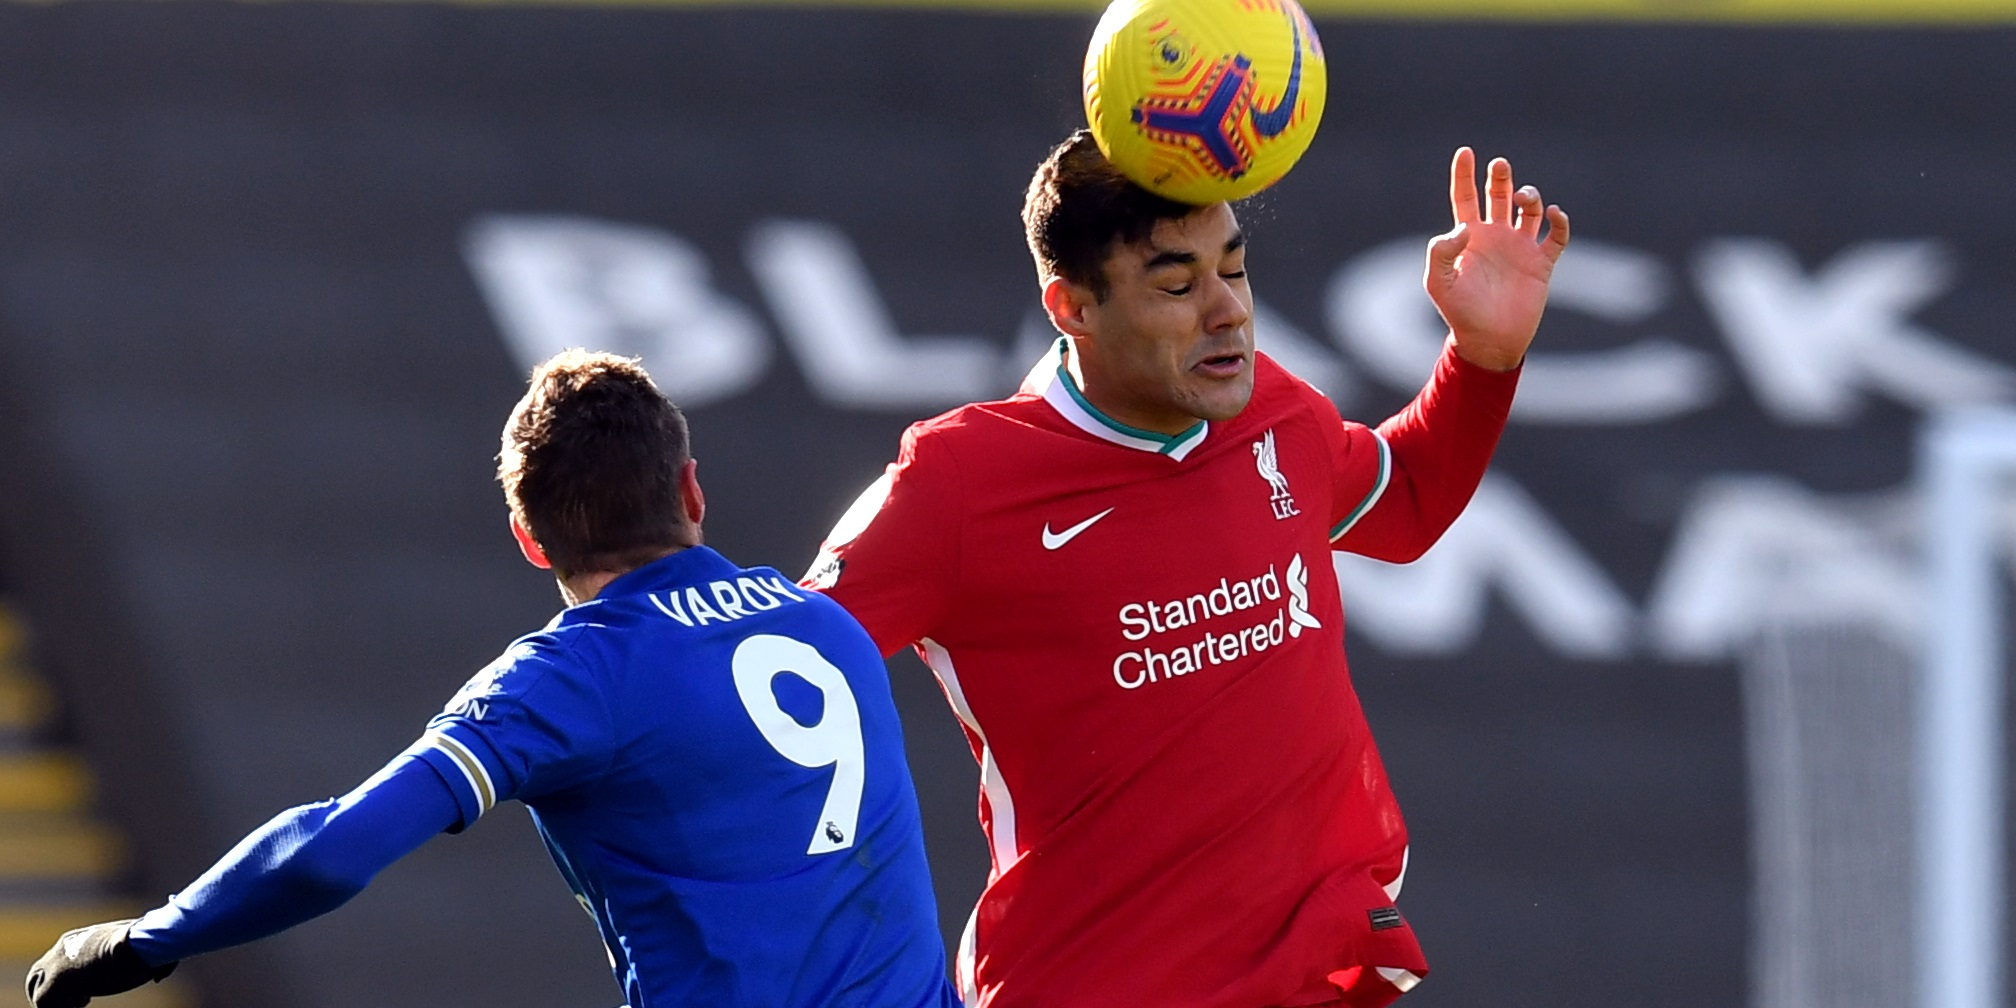 Crisis is the latest flavour of the month for Liverpool, but let's not be quick to judge Kabak too – opinion